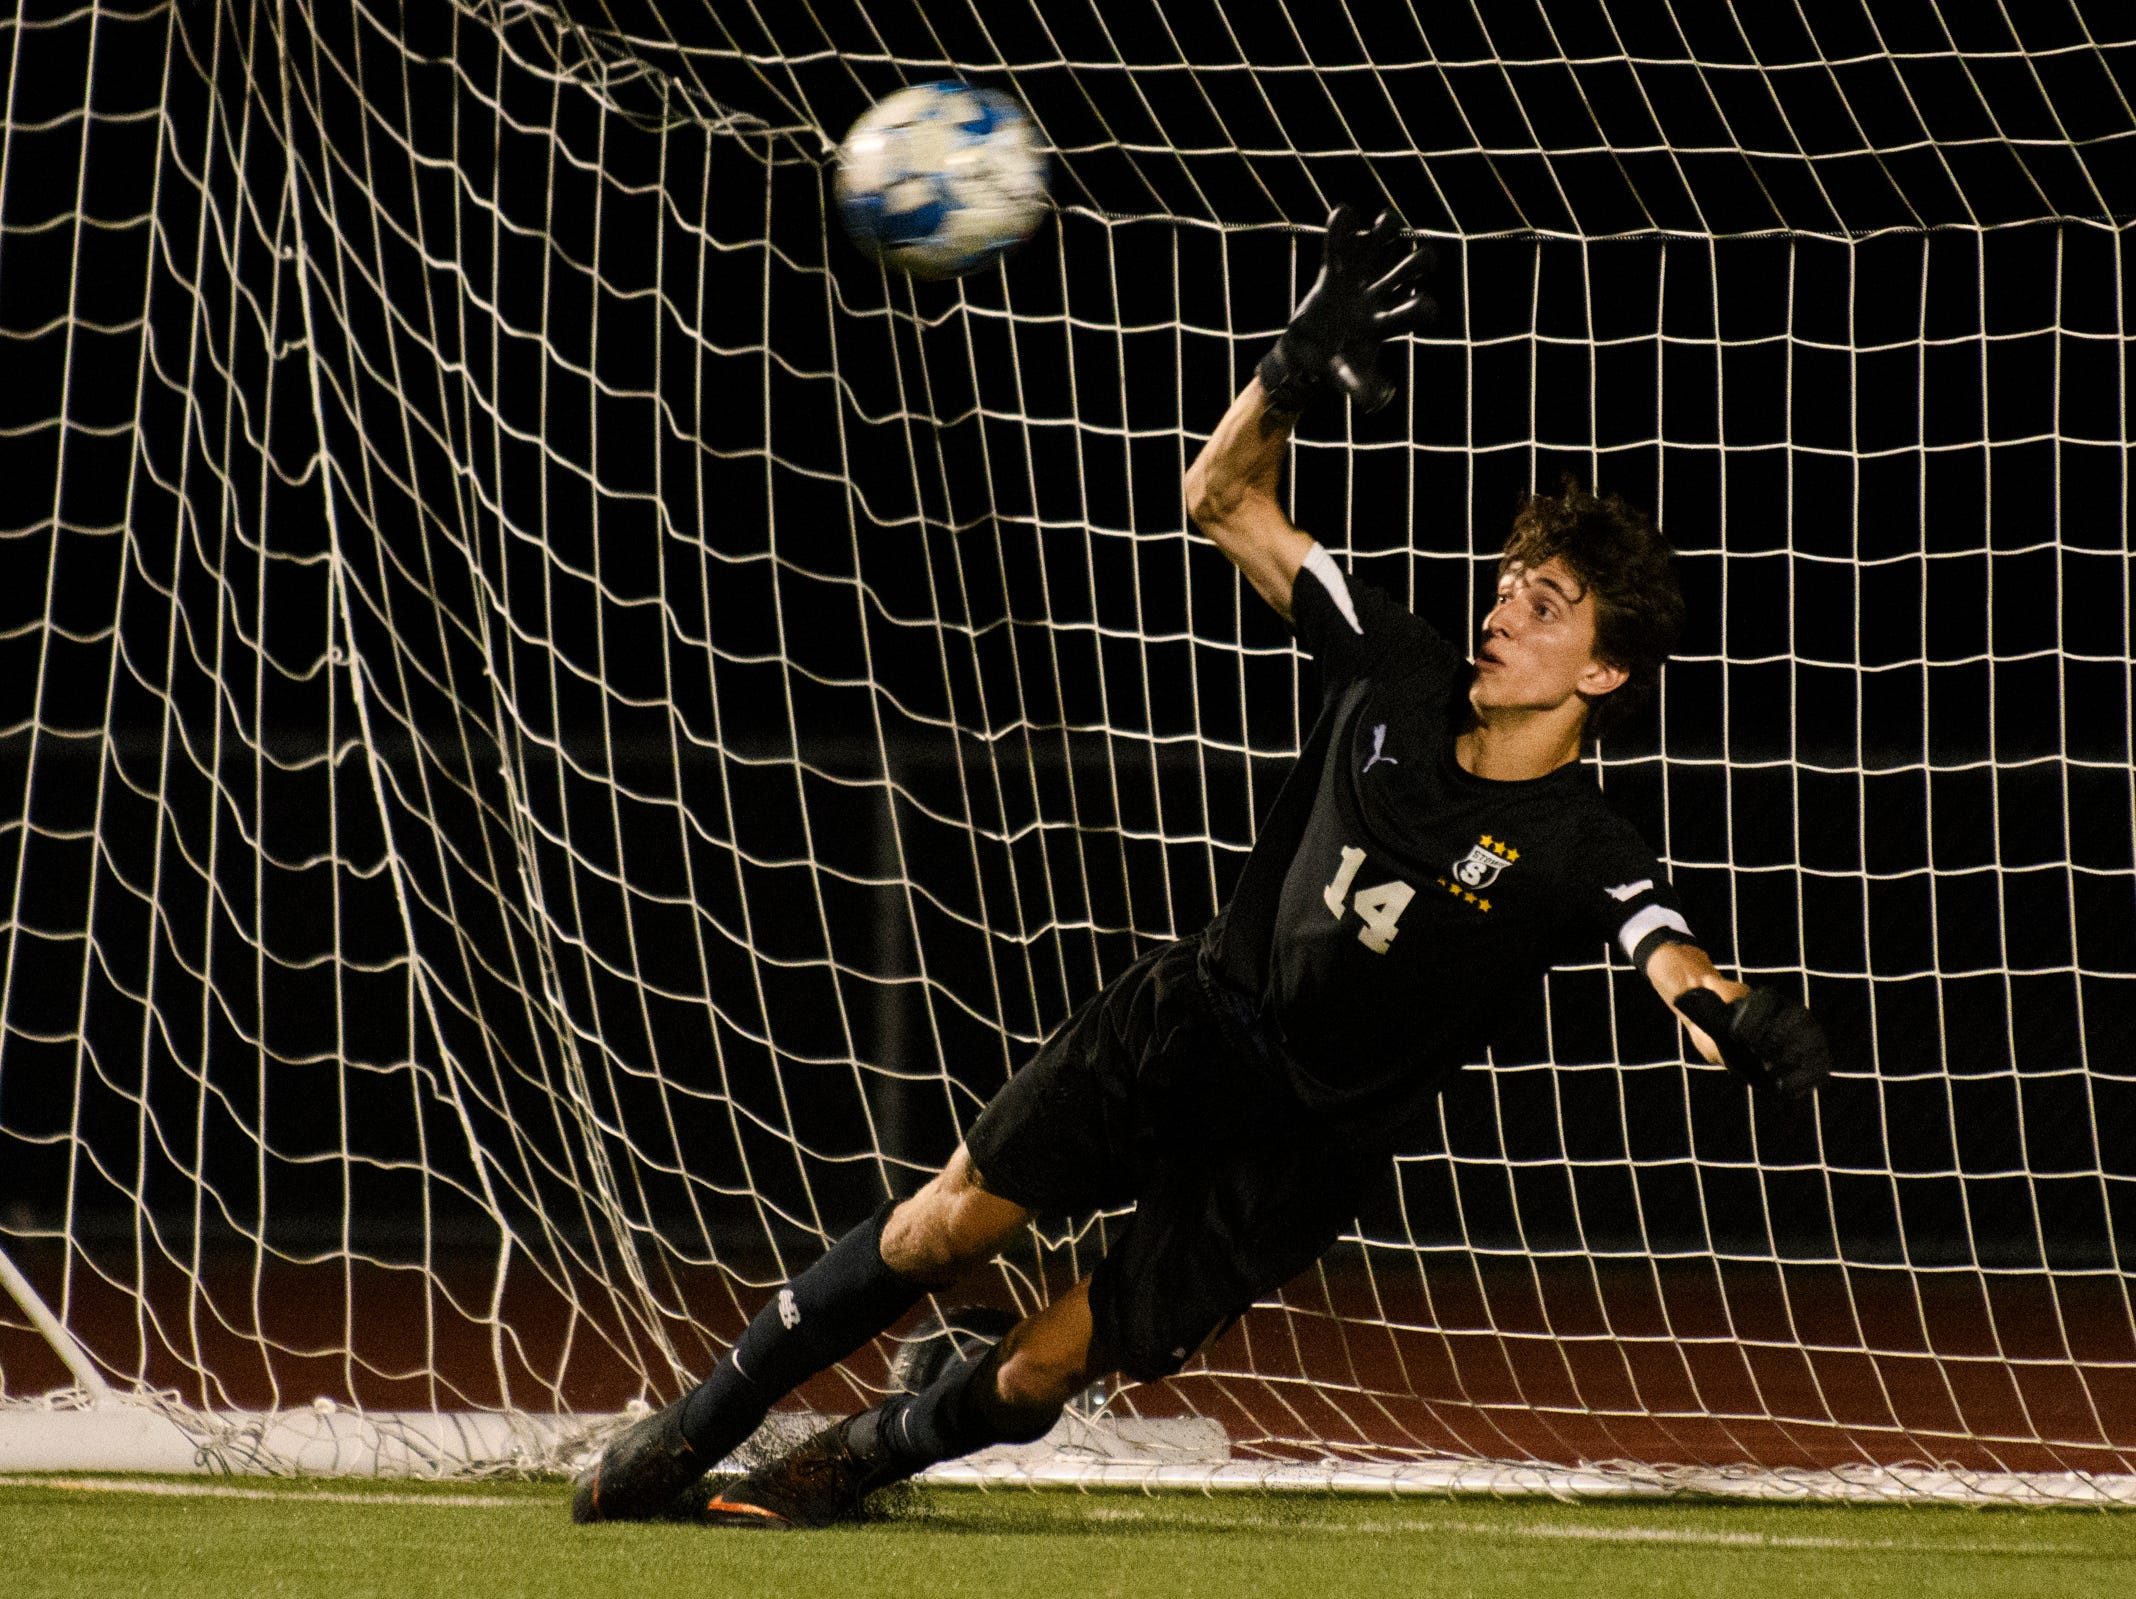 Stowe goalie tries to make a save on the penalty kick during the boys soccer game between Stowe and Burlington at Buck Hard field on Wednesday night September 5, 2018 in Burlington.